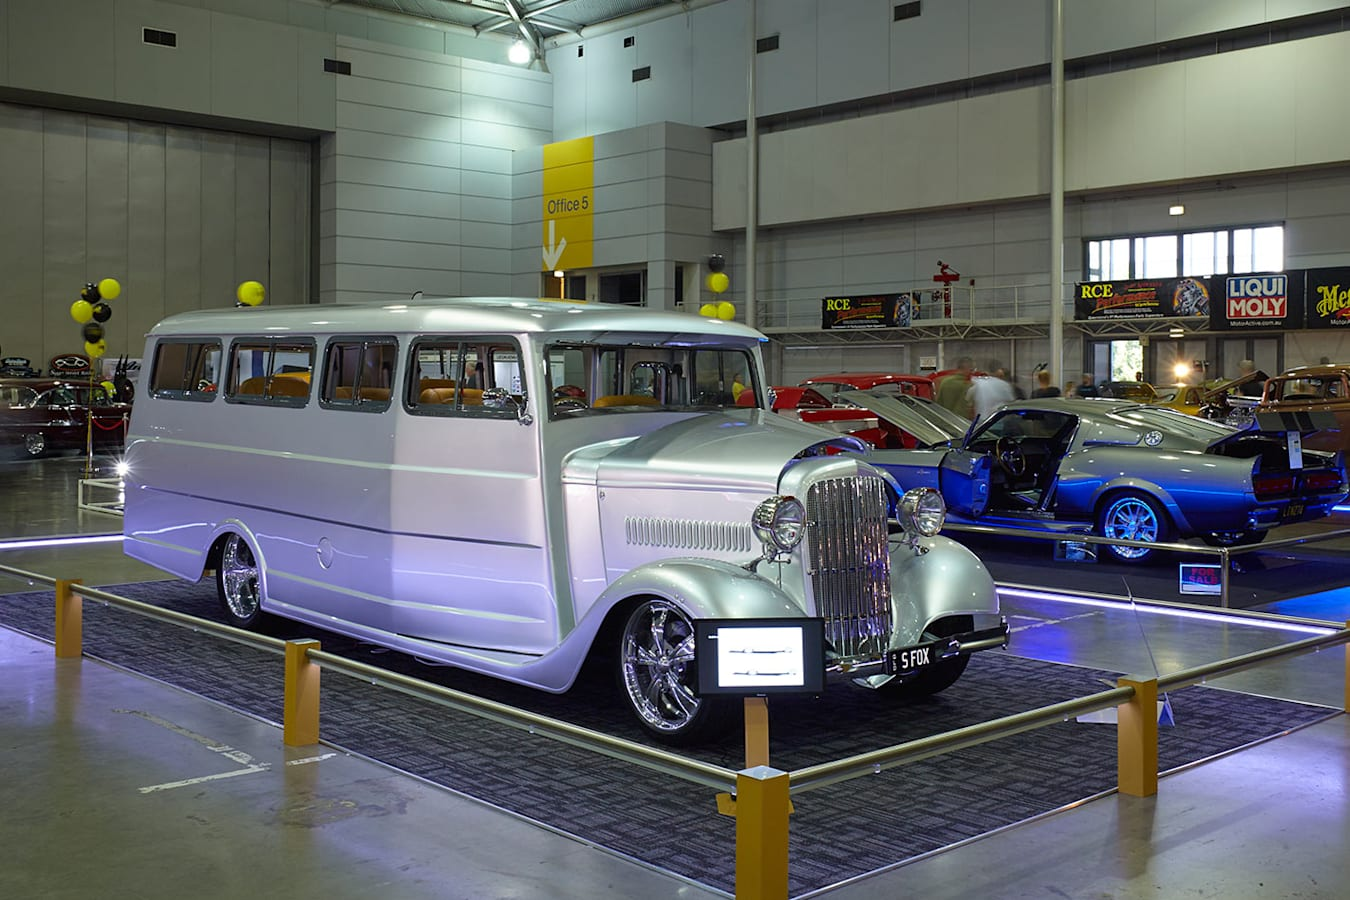 Silver Fox Bus at the Qld Hot Rod Show